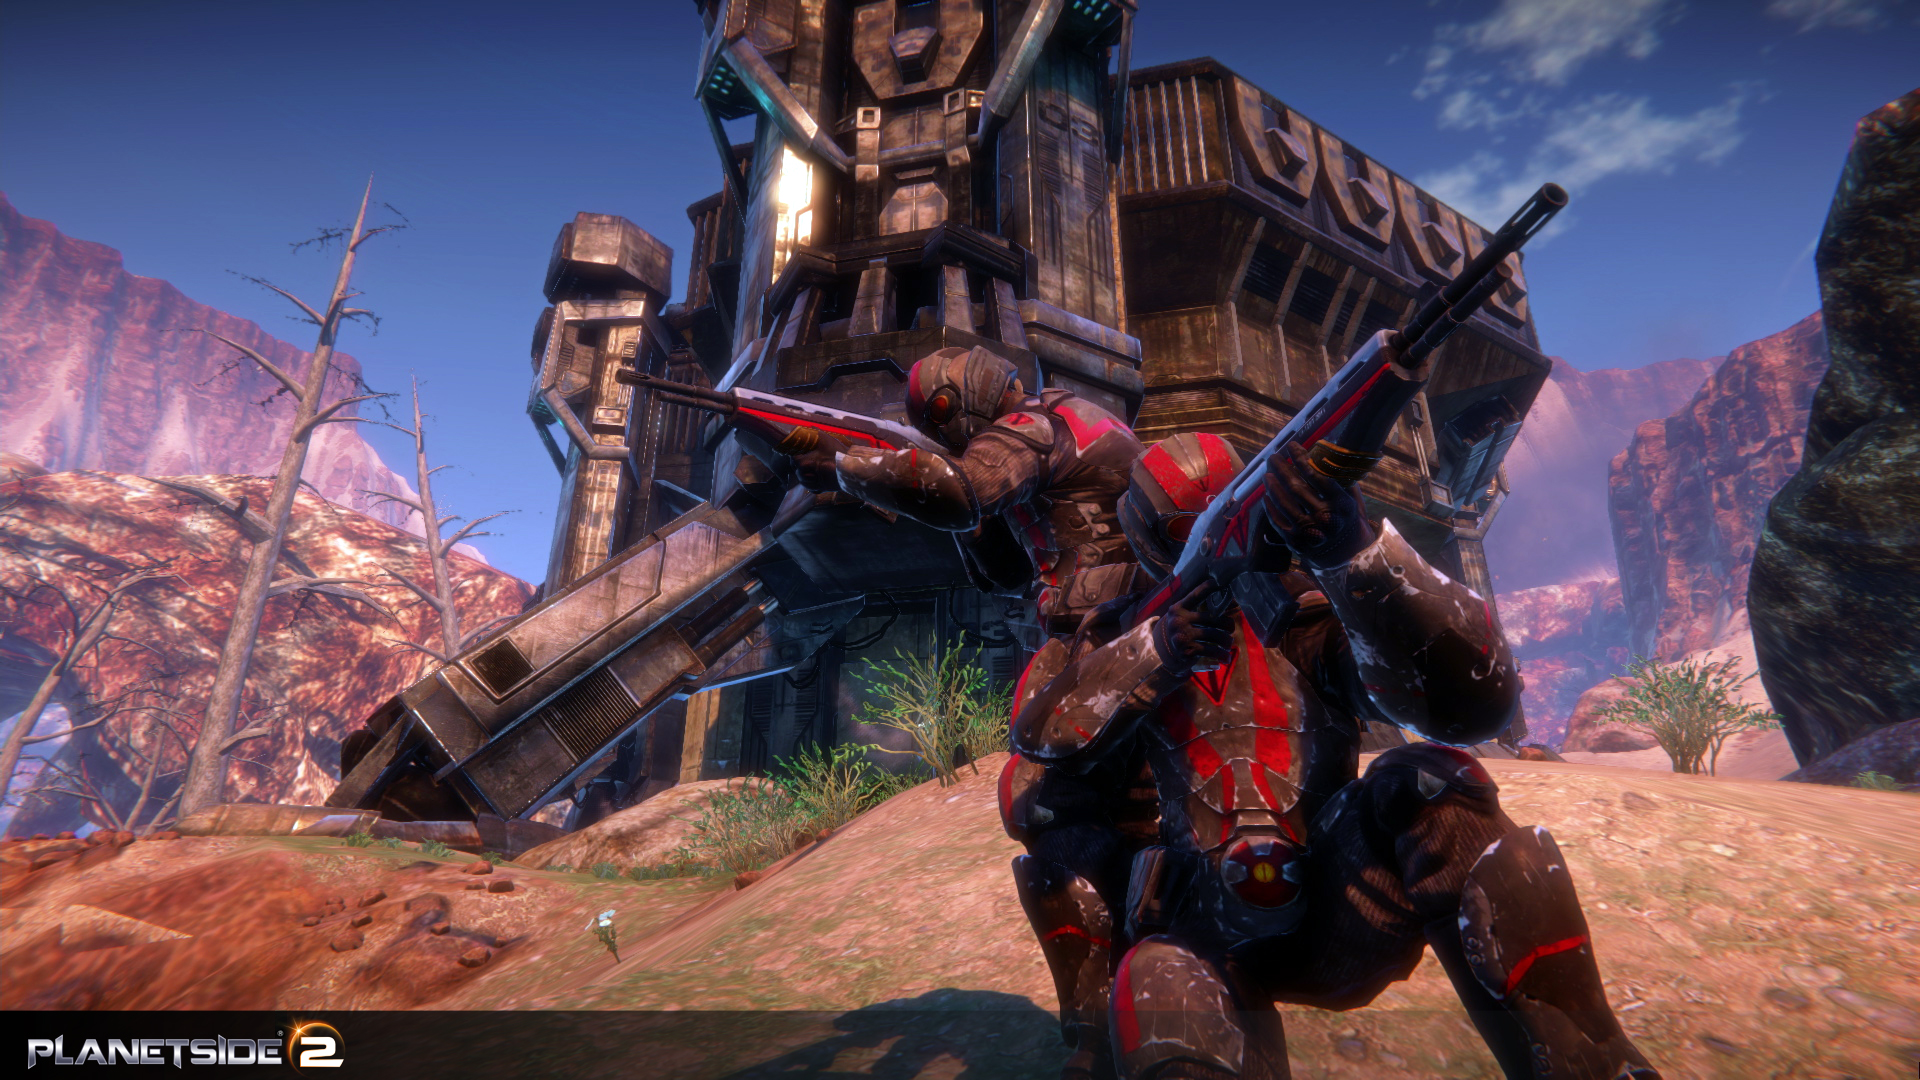 Click image for larger version.Name:Planetside 2 (1).jpgViews:275Size:1.35 MBID:9170